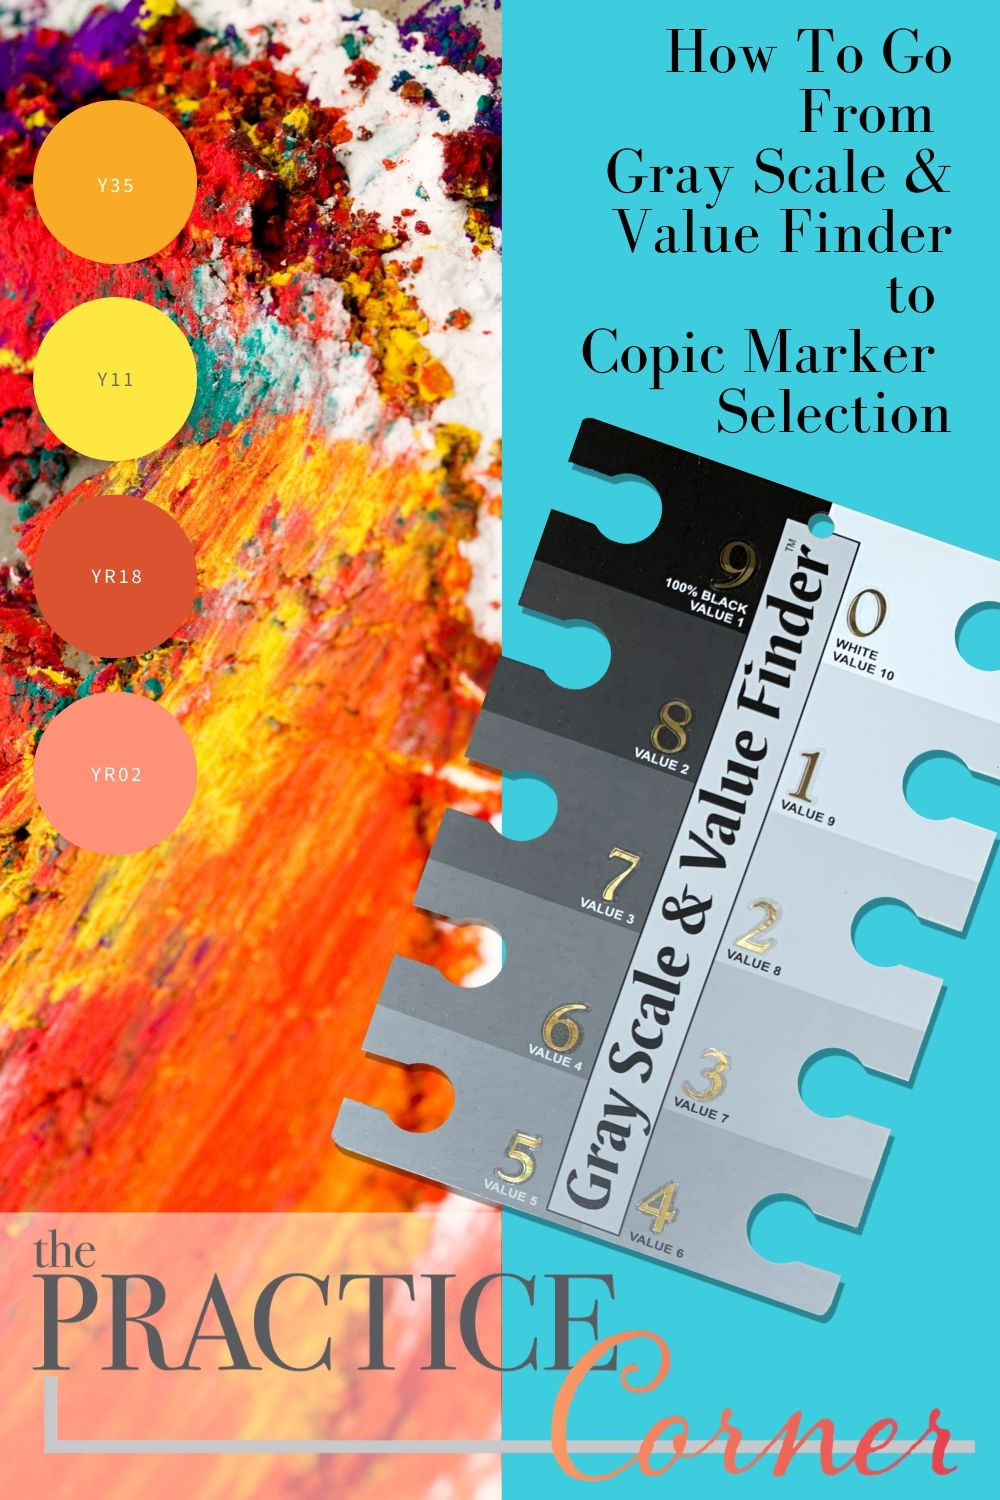 Quick Coloring Tip: How to use the Gray Scale & Value Finder to select Copic markers, colored pencils or watercolors for more realistic in your project.  #coloredpencil #coloredpencilpractice #copicmarker #copicmarkerpractice  #copiccoloring #coloredpencilcoloring